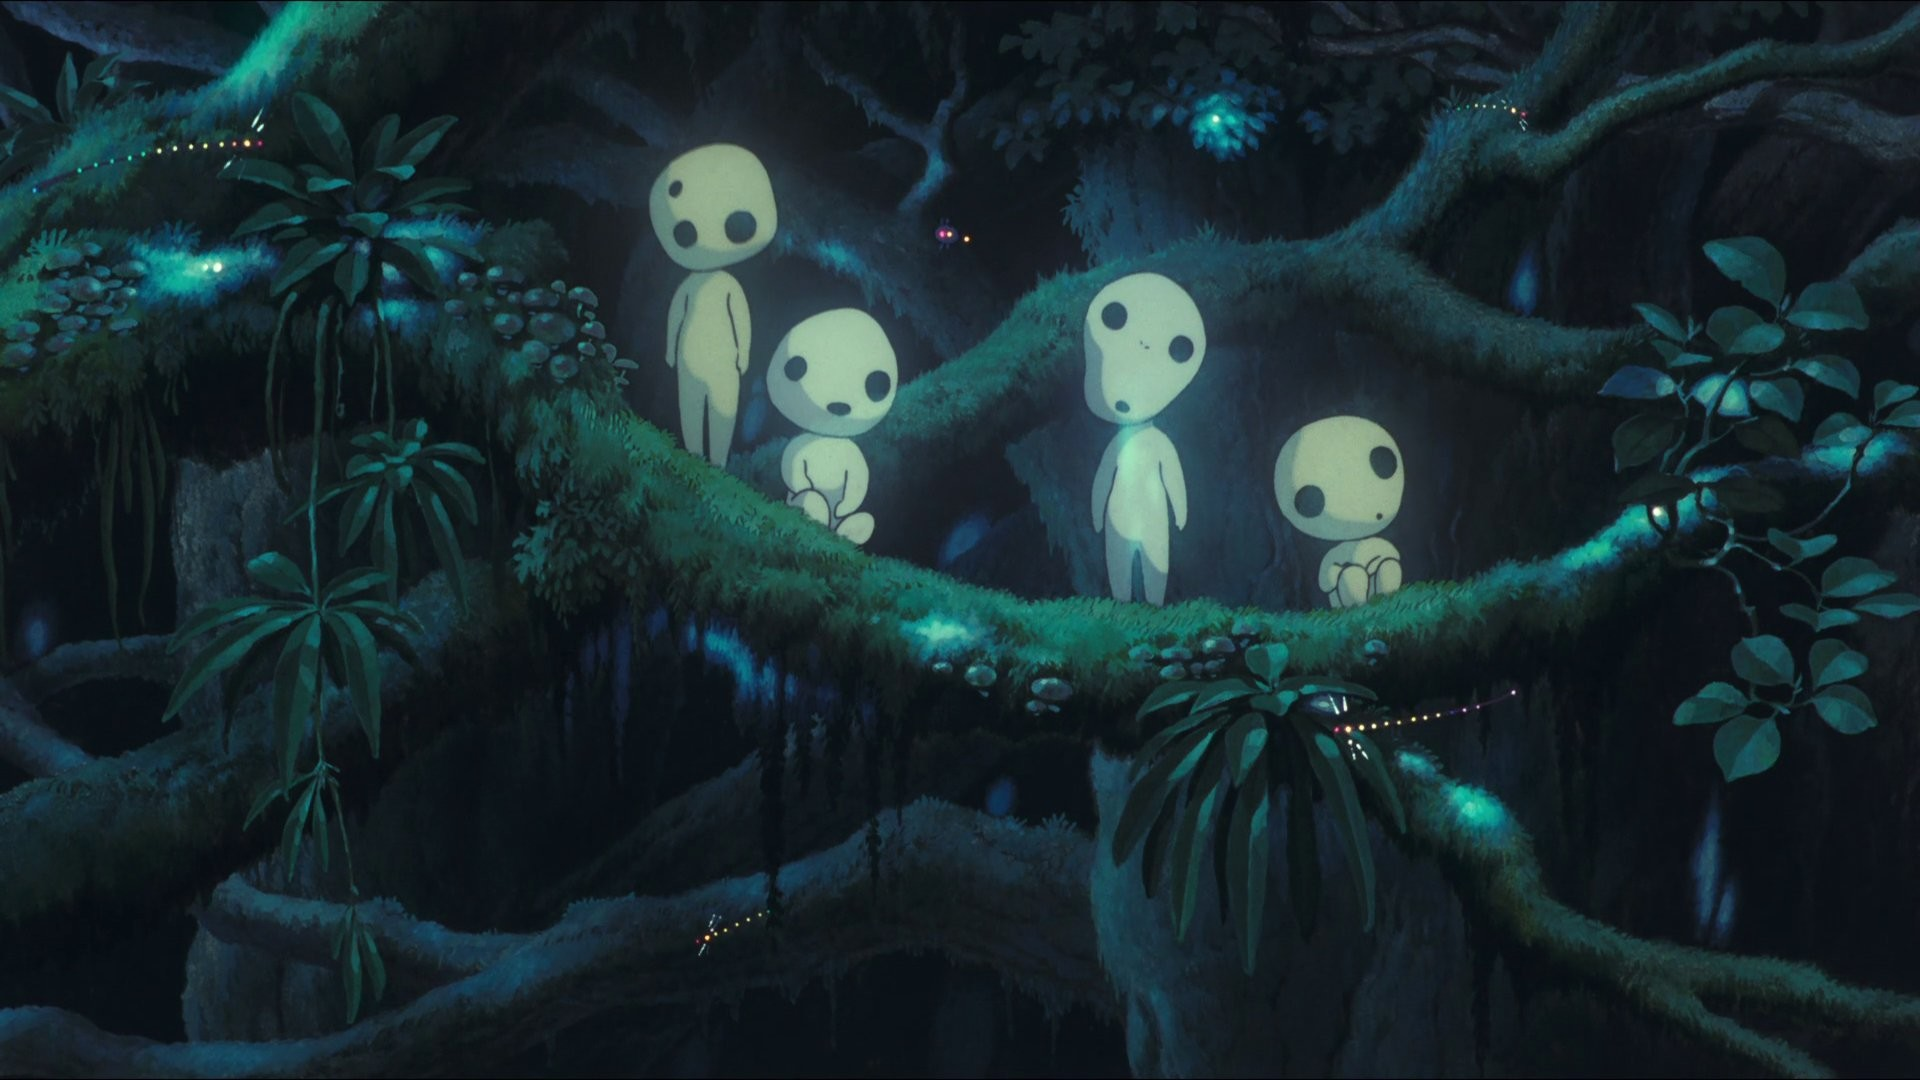 … Perfect Princess Mononoke Wallpaper of awesome full screen HD wallpapers  to download for free. You